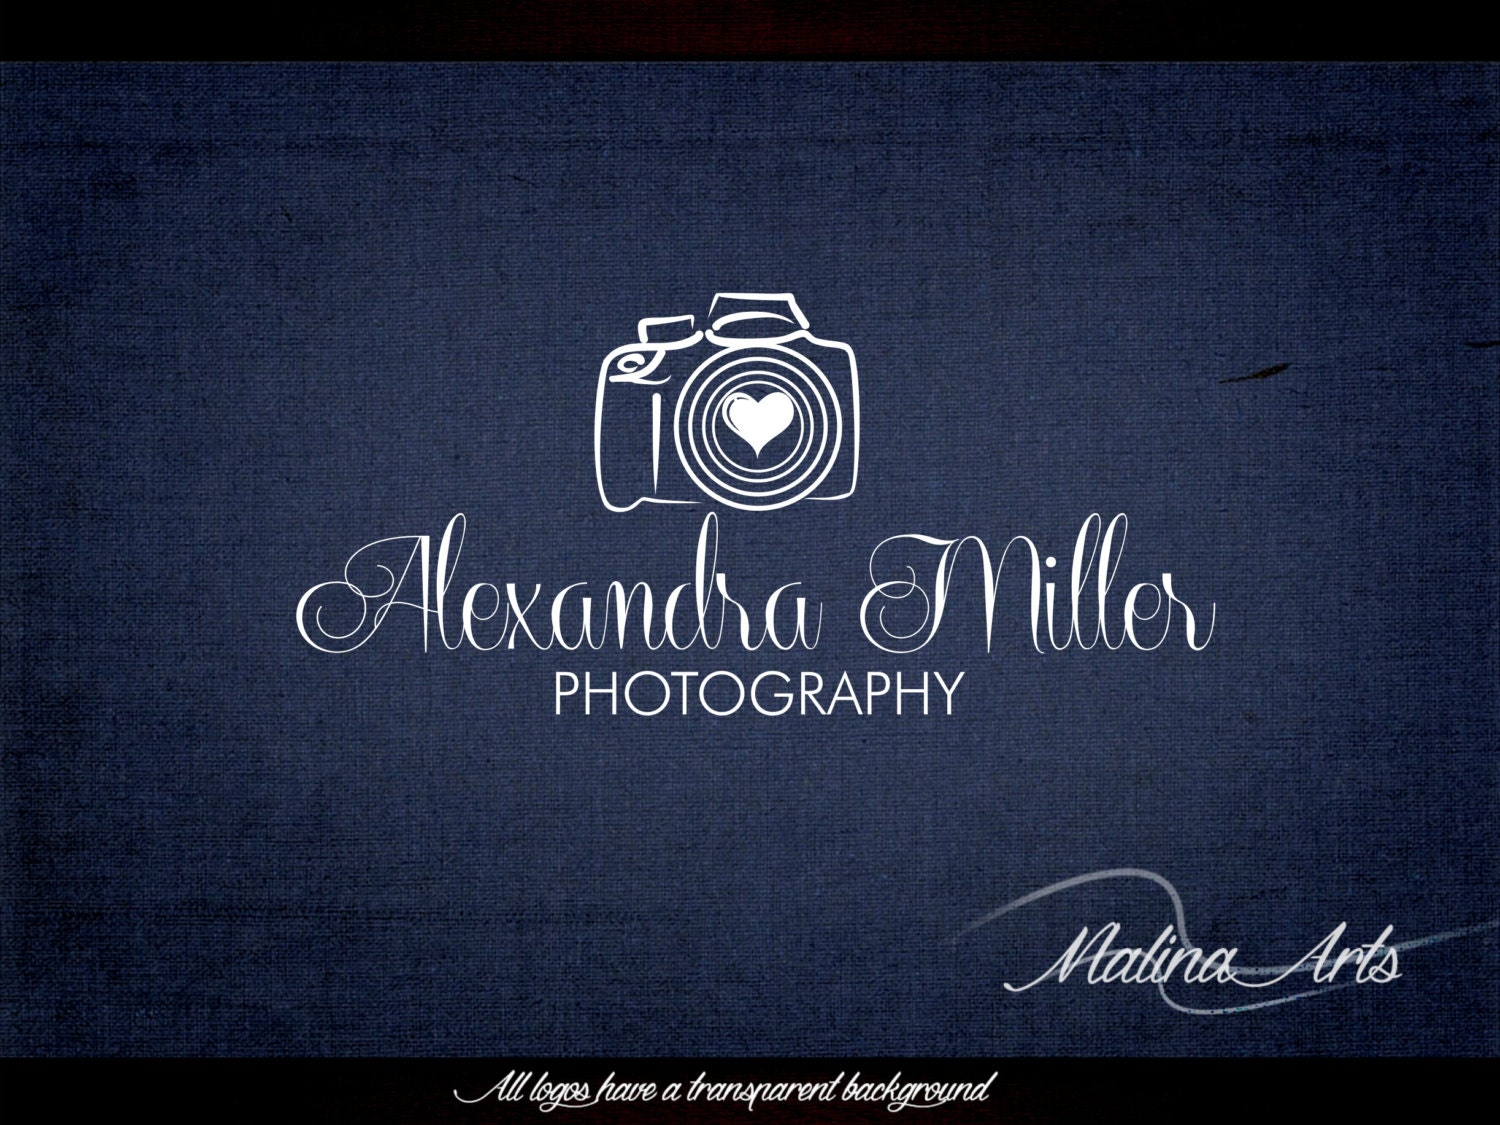 Photography logo design and photography watermark. Camera Logo